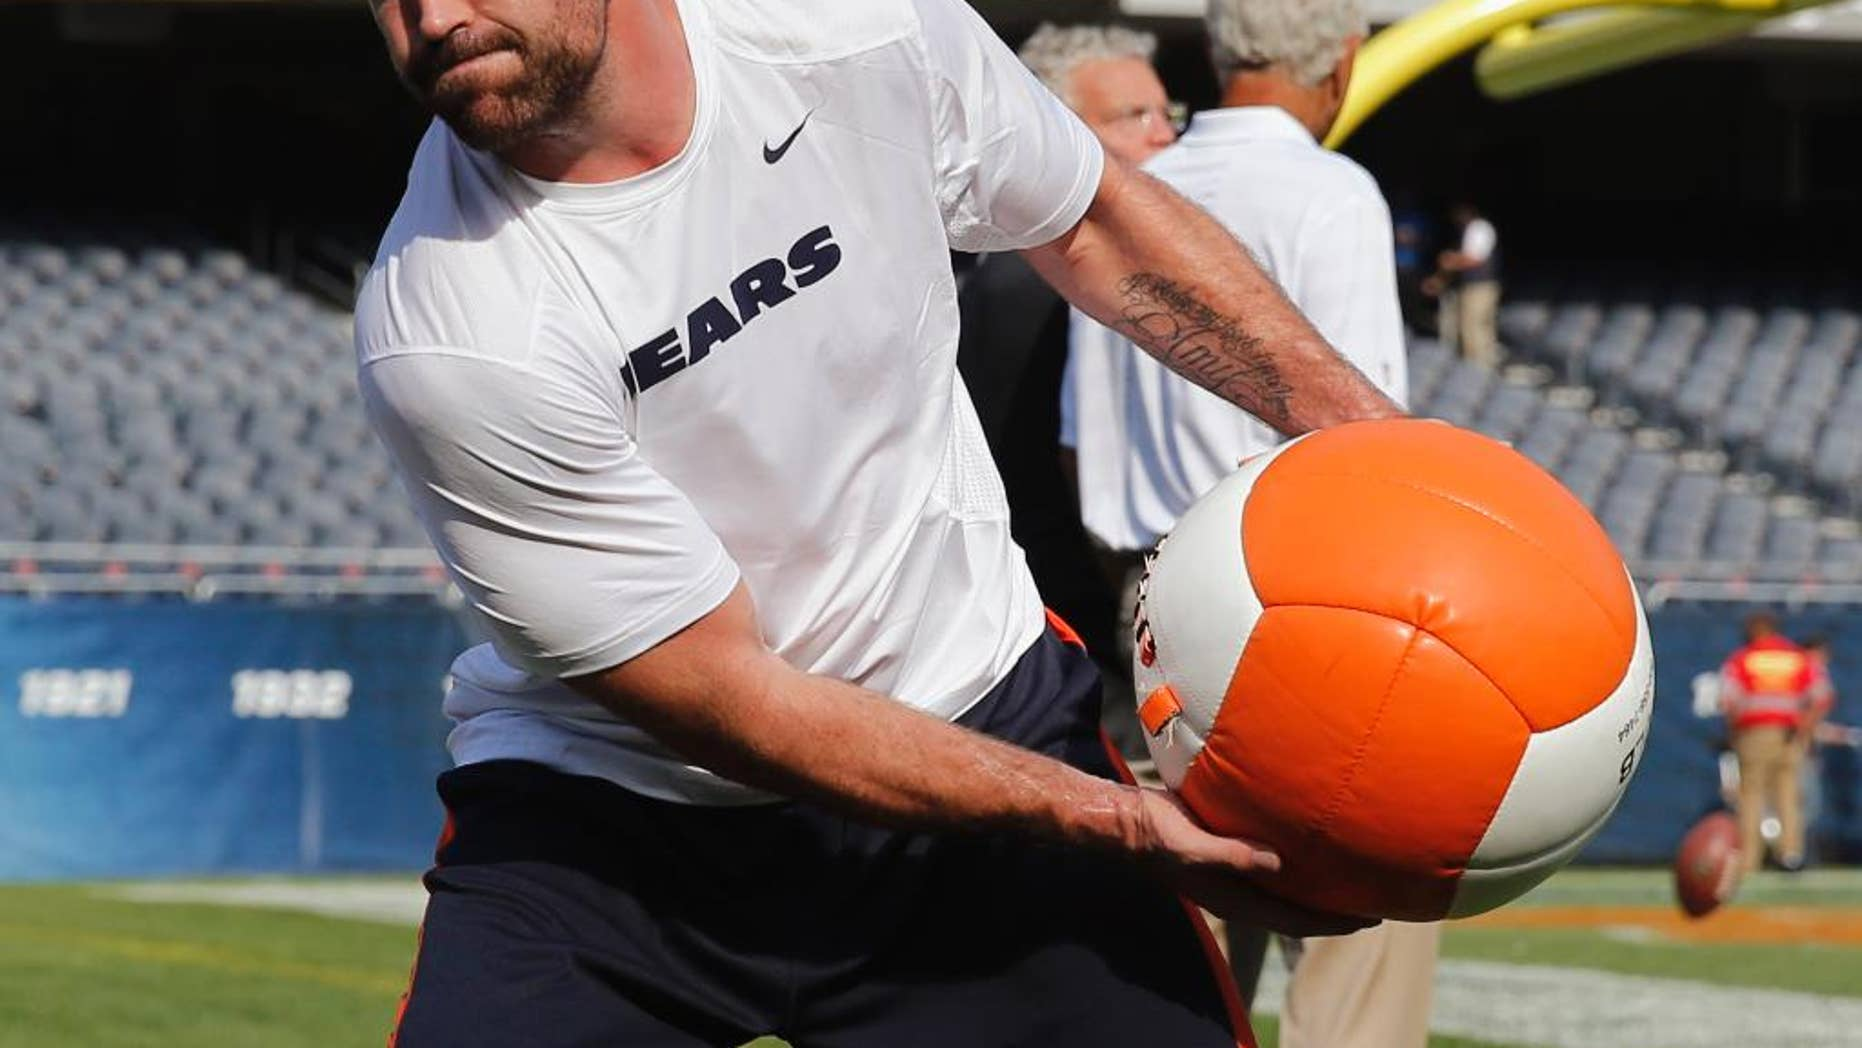 Chicago Bears defensive end Jared Allen warms up before an NFL preseason football game against the Philadelphia Eagles Friday, Aug. 8, 2014, in Chicago. (AP Photo/Charles Rex Arbogast)